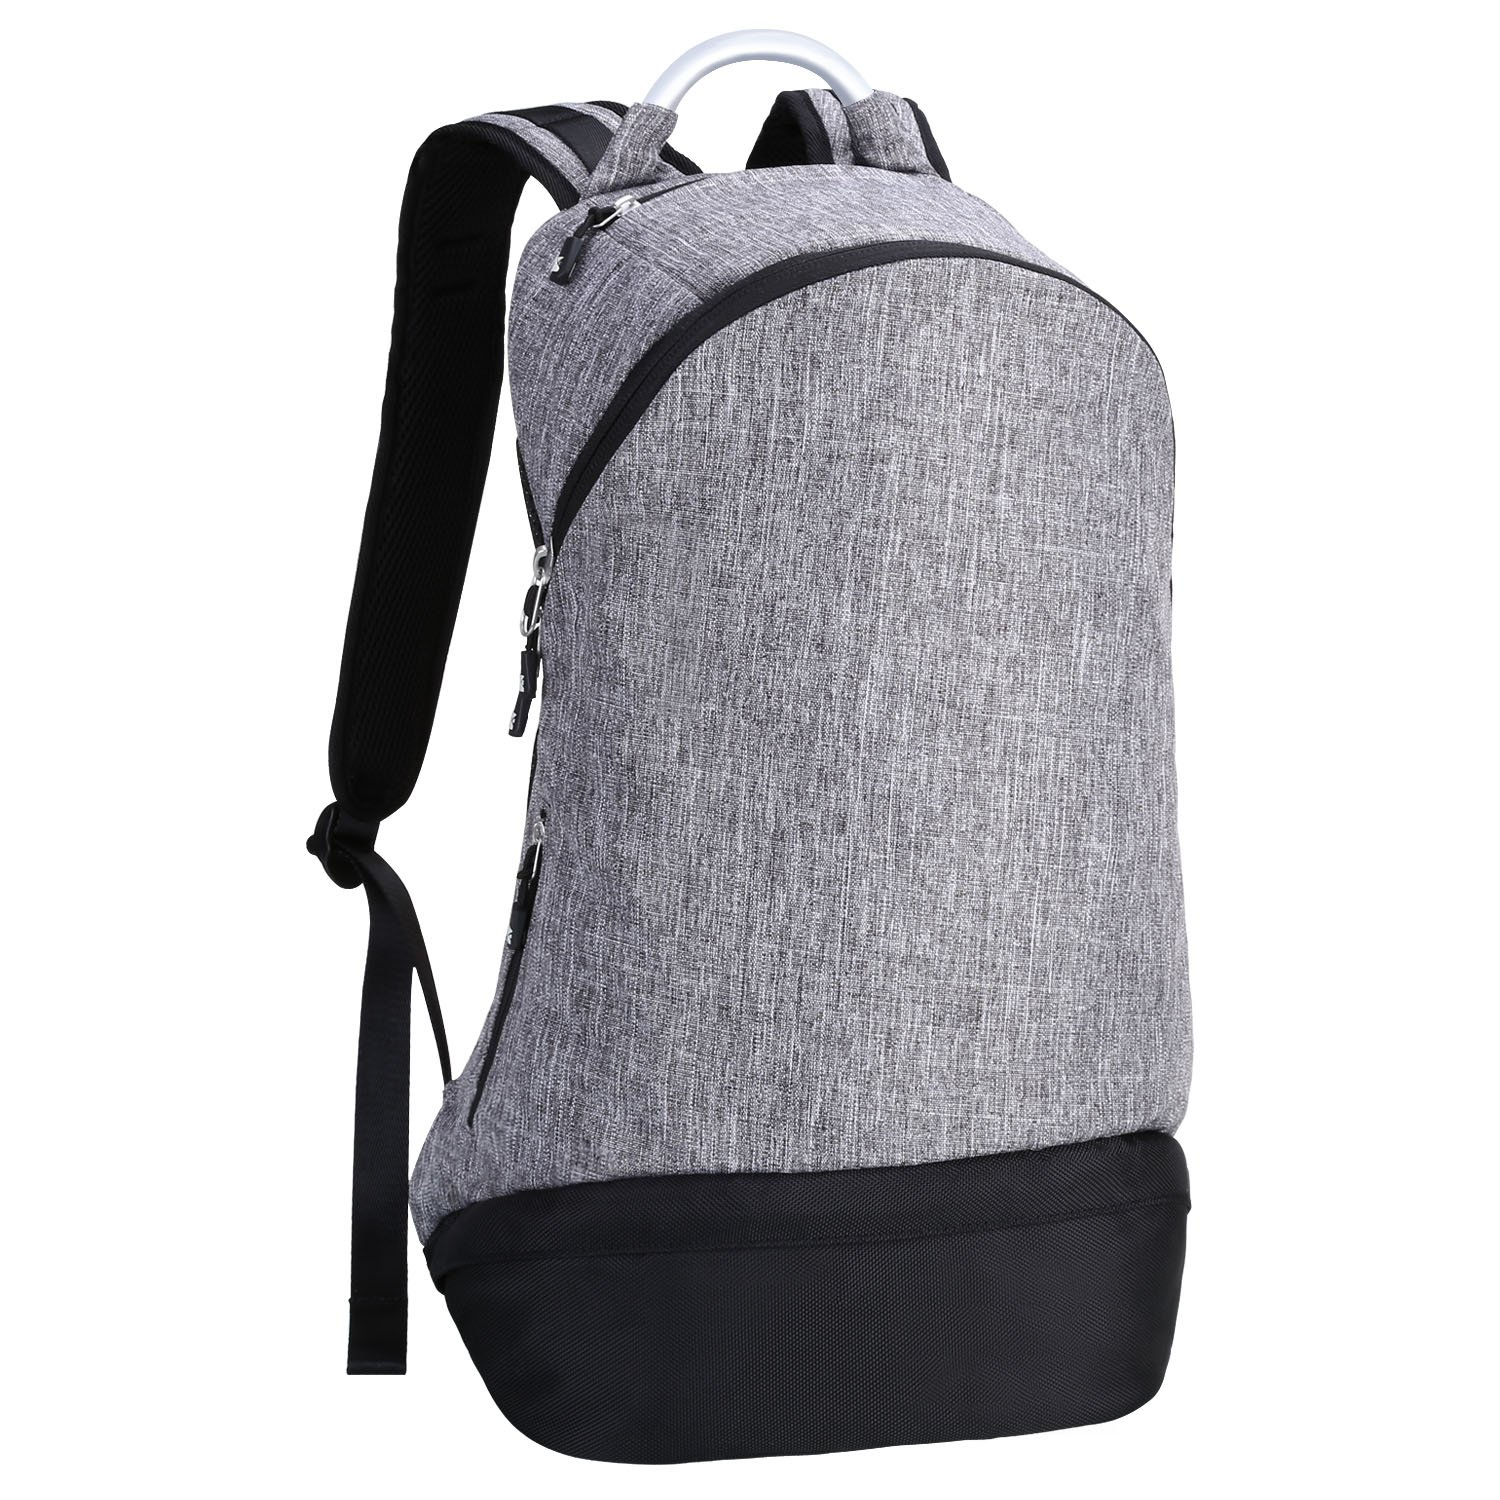 Back to School,Backpack, REYLEO, 22L, Fits 15.6'' Laptop, Wet Dry Compartment for Lunch Box, Metal Handle, Durable Fabric for School Business Work Travel, Gray/Black (RB16)